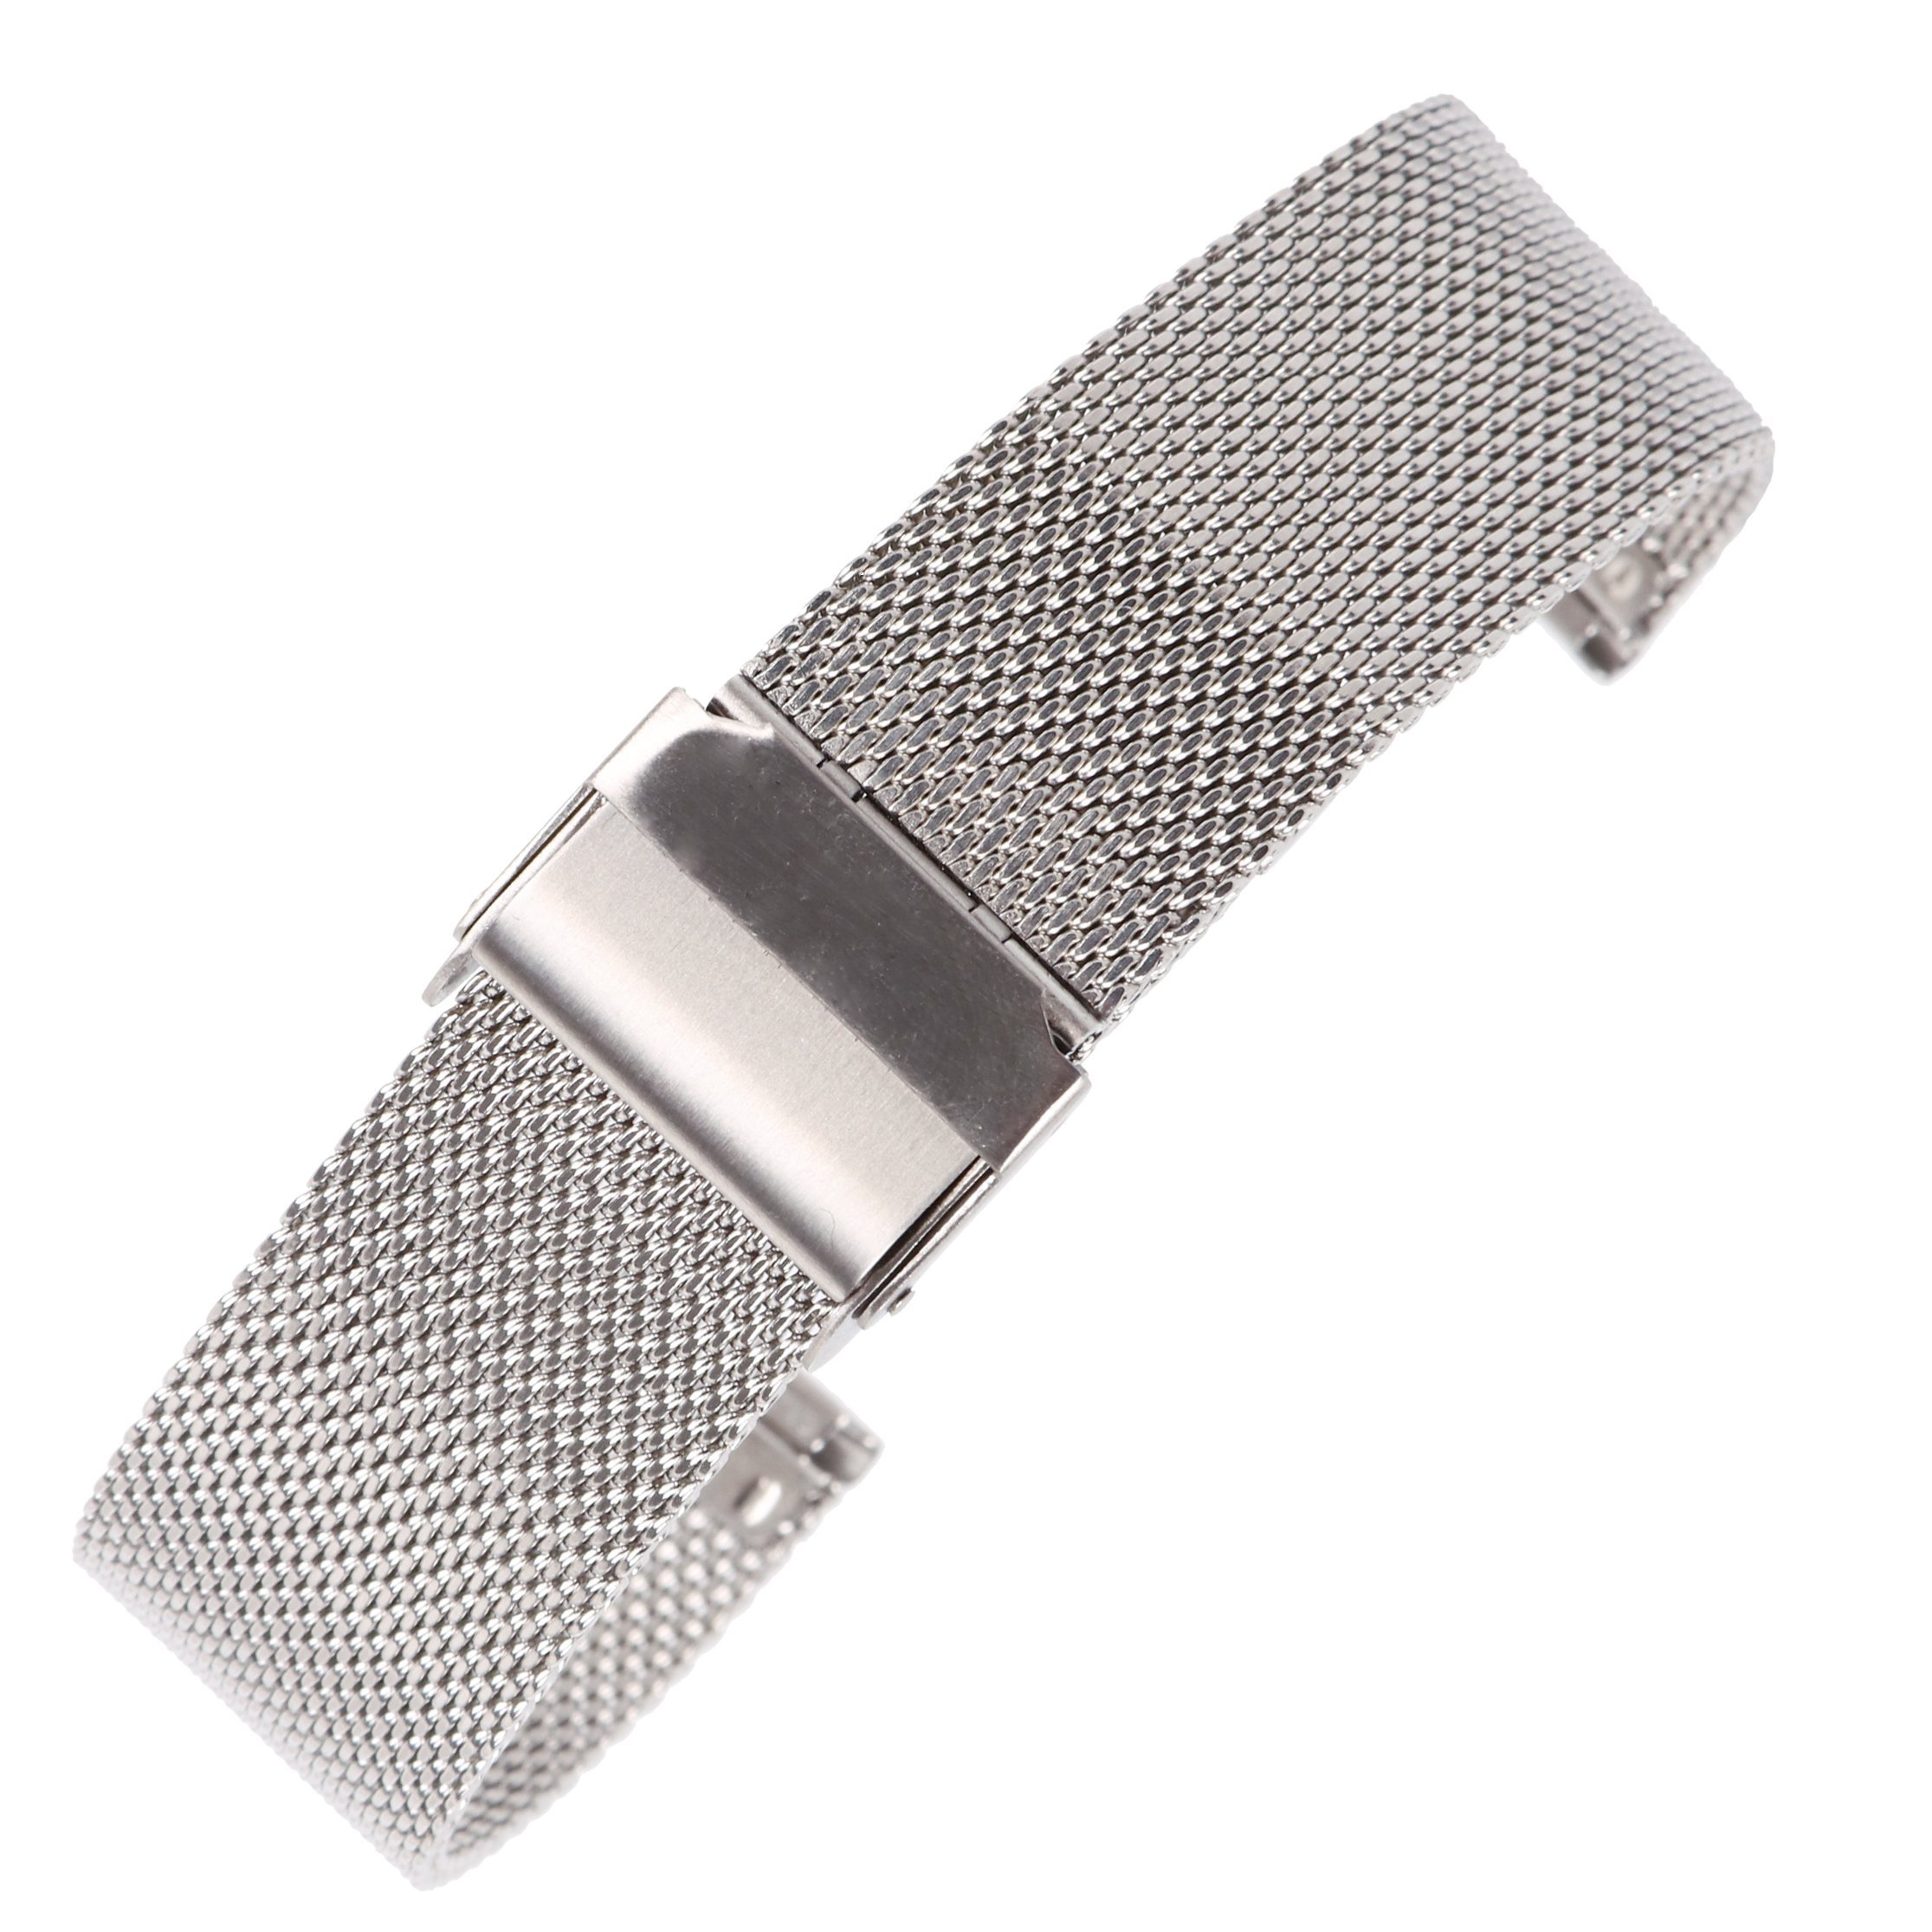 20mm Men's Metal Mesh Watch Strap in Silver Milanese Loop Chain Watch Bracelet with Double Security Clasp